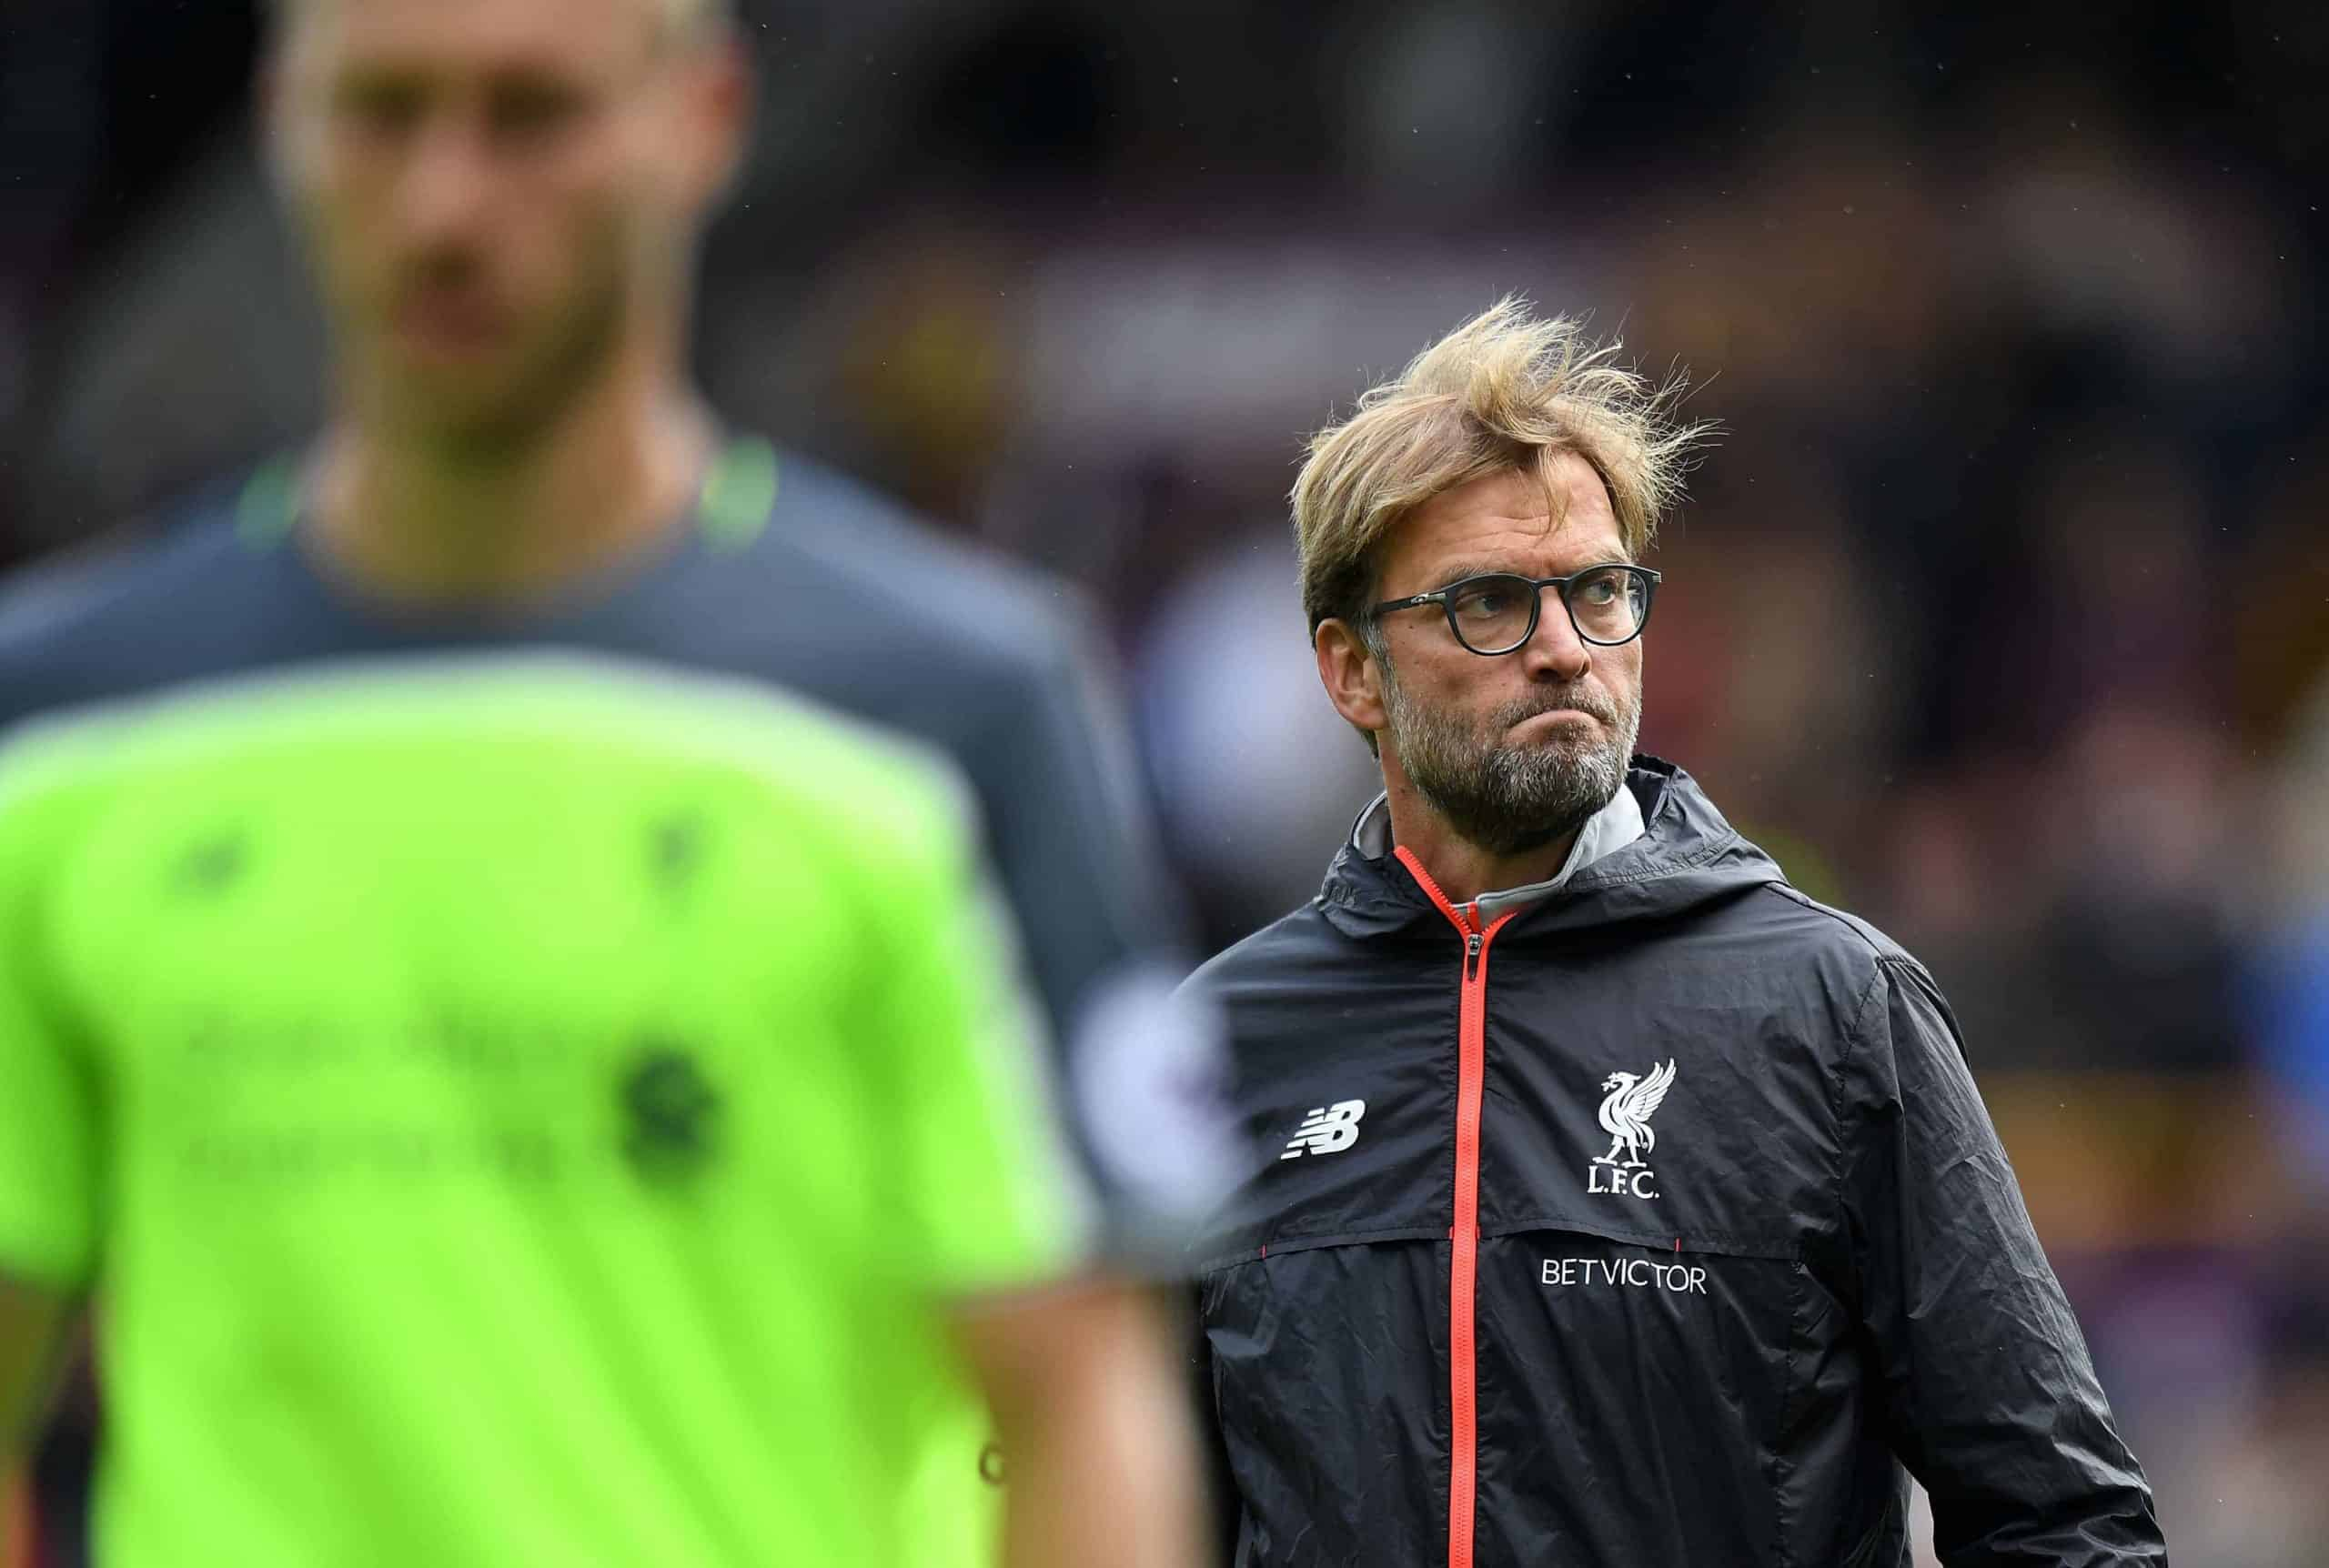 Liverpool manager Jurgen Klopp after the Premier League match at Turf Moor, Burnley.